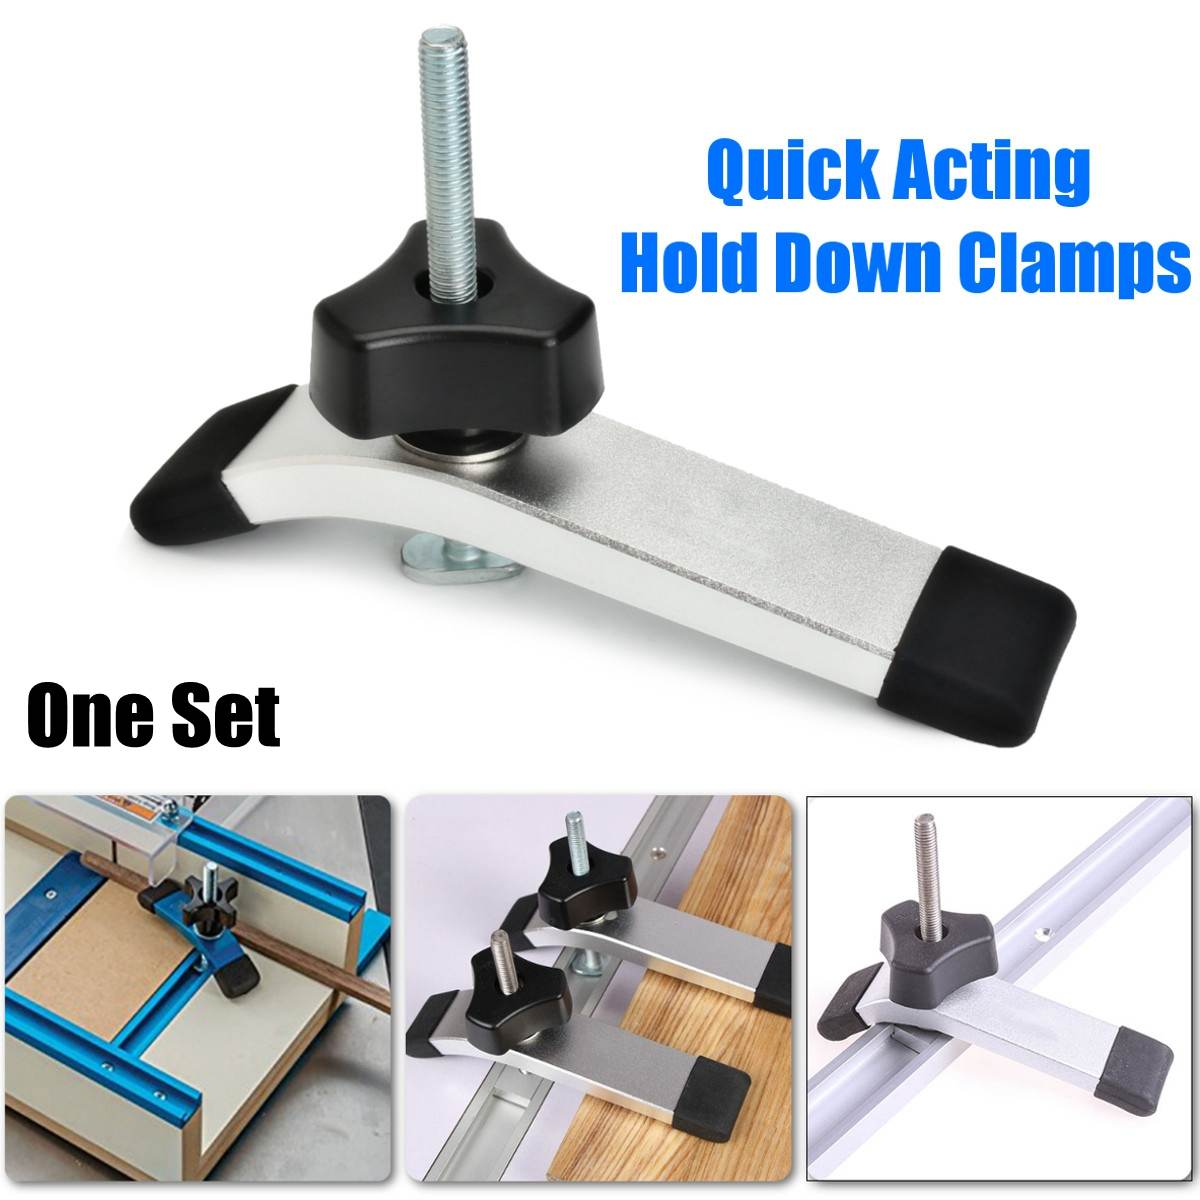 Woodworking Tools Quick Acting Hold Down Clamps Hold Down Device For T-Slot T-Tracks New